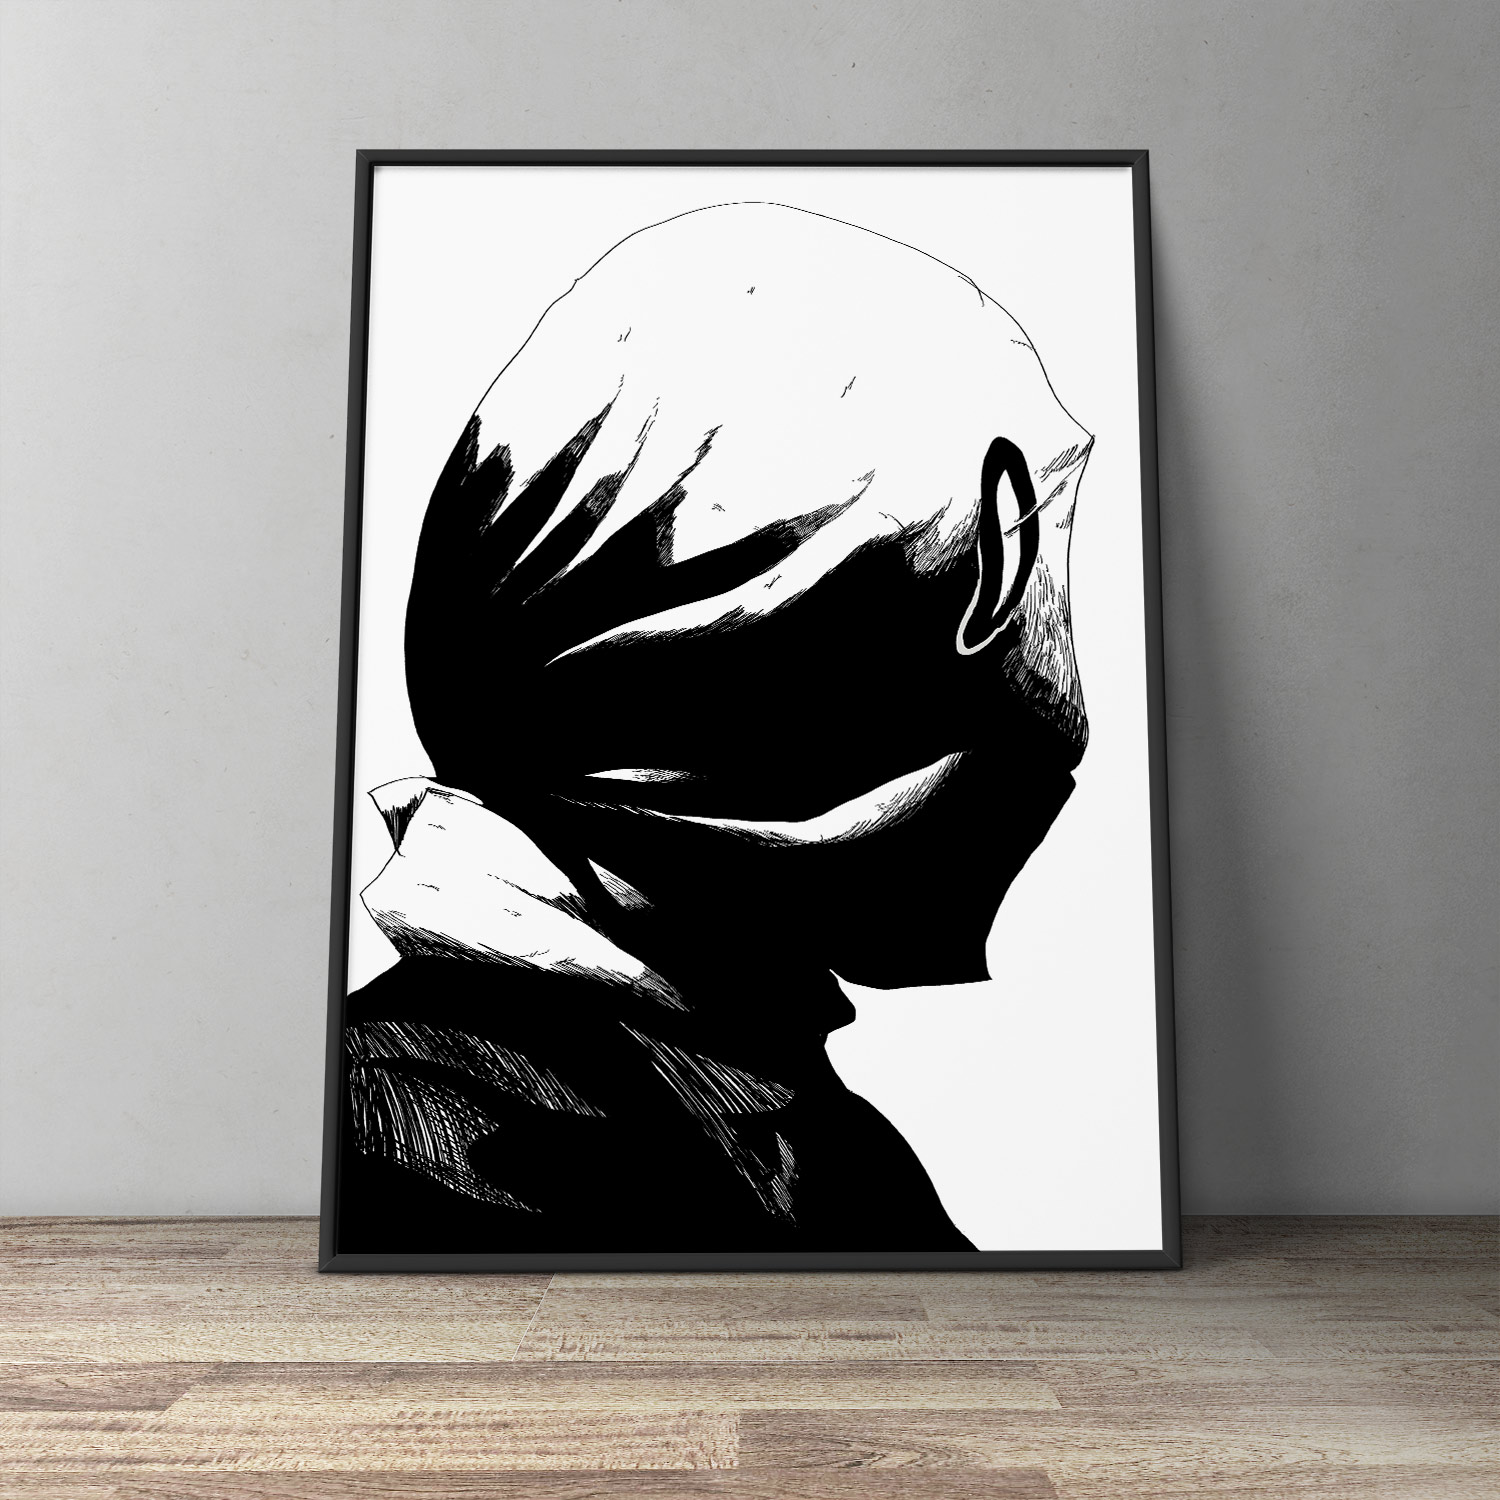 art-prints, gliceé, figurative, monochrome, portraiture, people, black, white, paper, black-and-white, contemporary-art, danish, design, faces, interior, interior-design, modern, modern-art, nordic, posters, prints, Buy original high quality art. Paintings, drawings, limited edition prints & posters by talented artists.